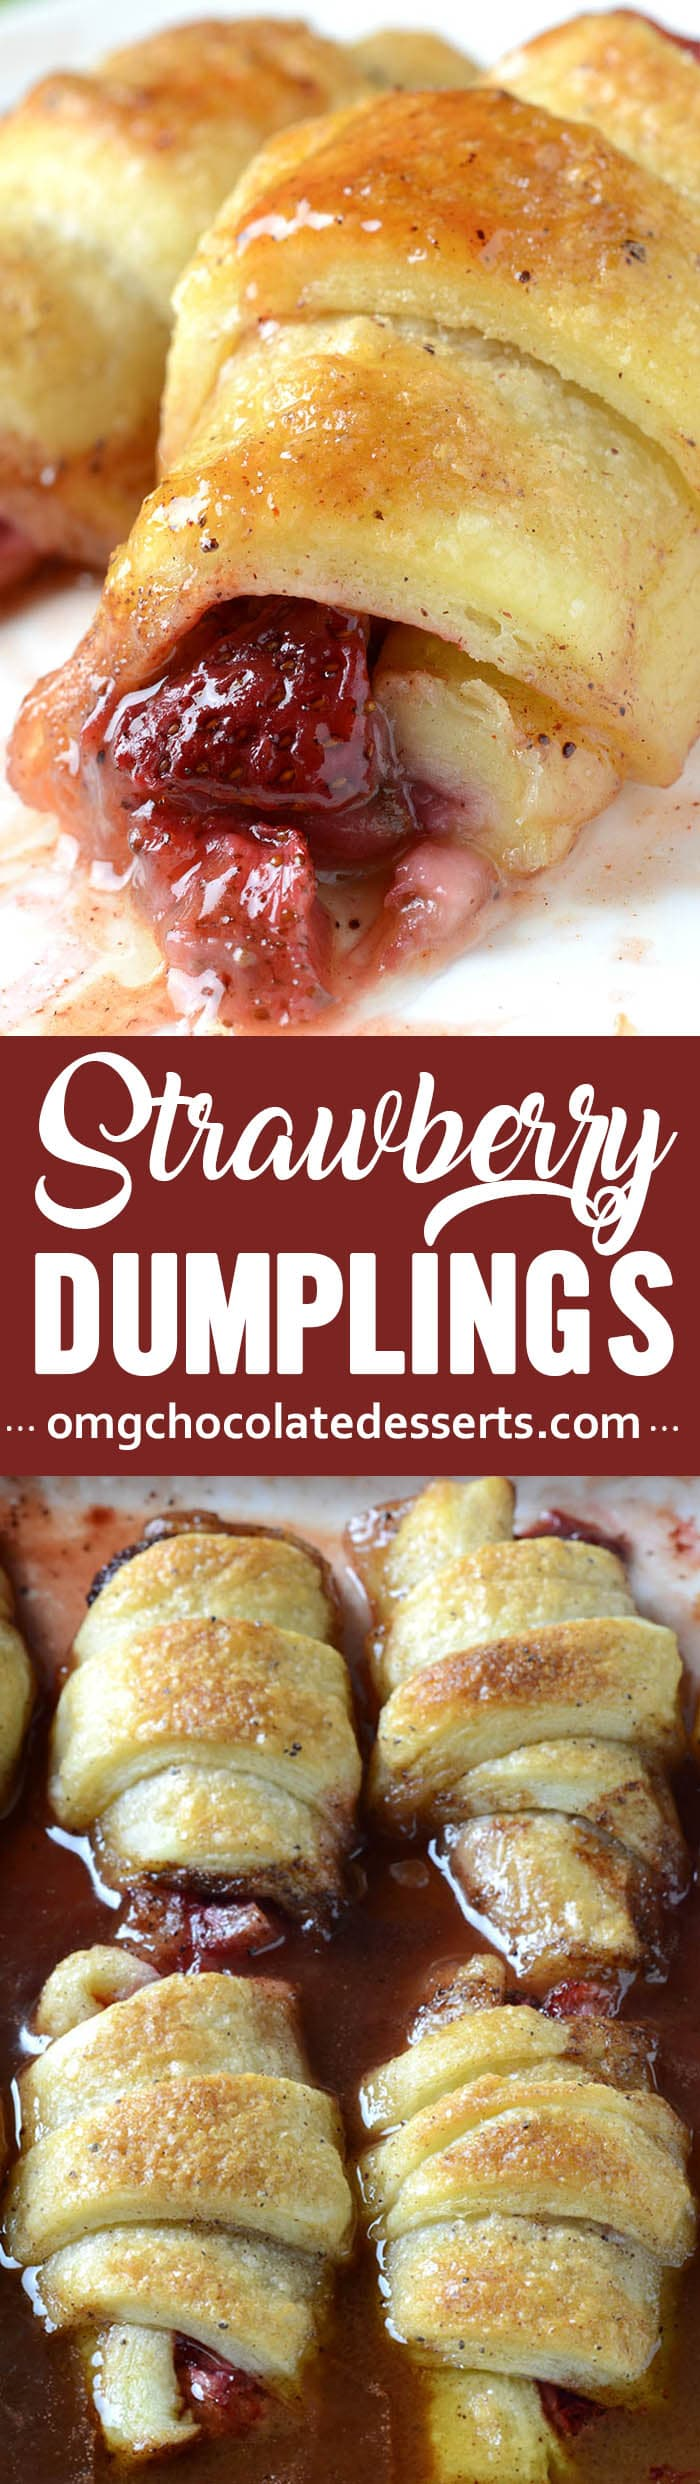 If you share my love for anything made with strawberries, then these strawberry dumplings are exactly what you need to try.